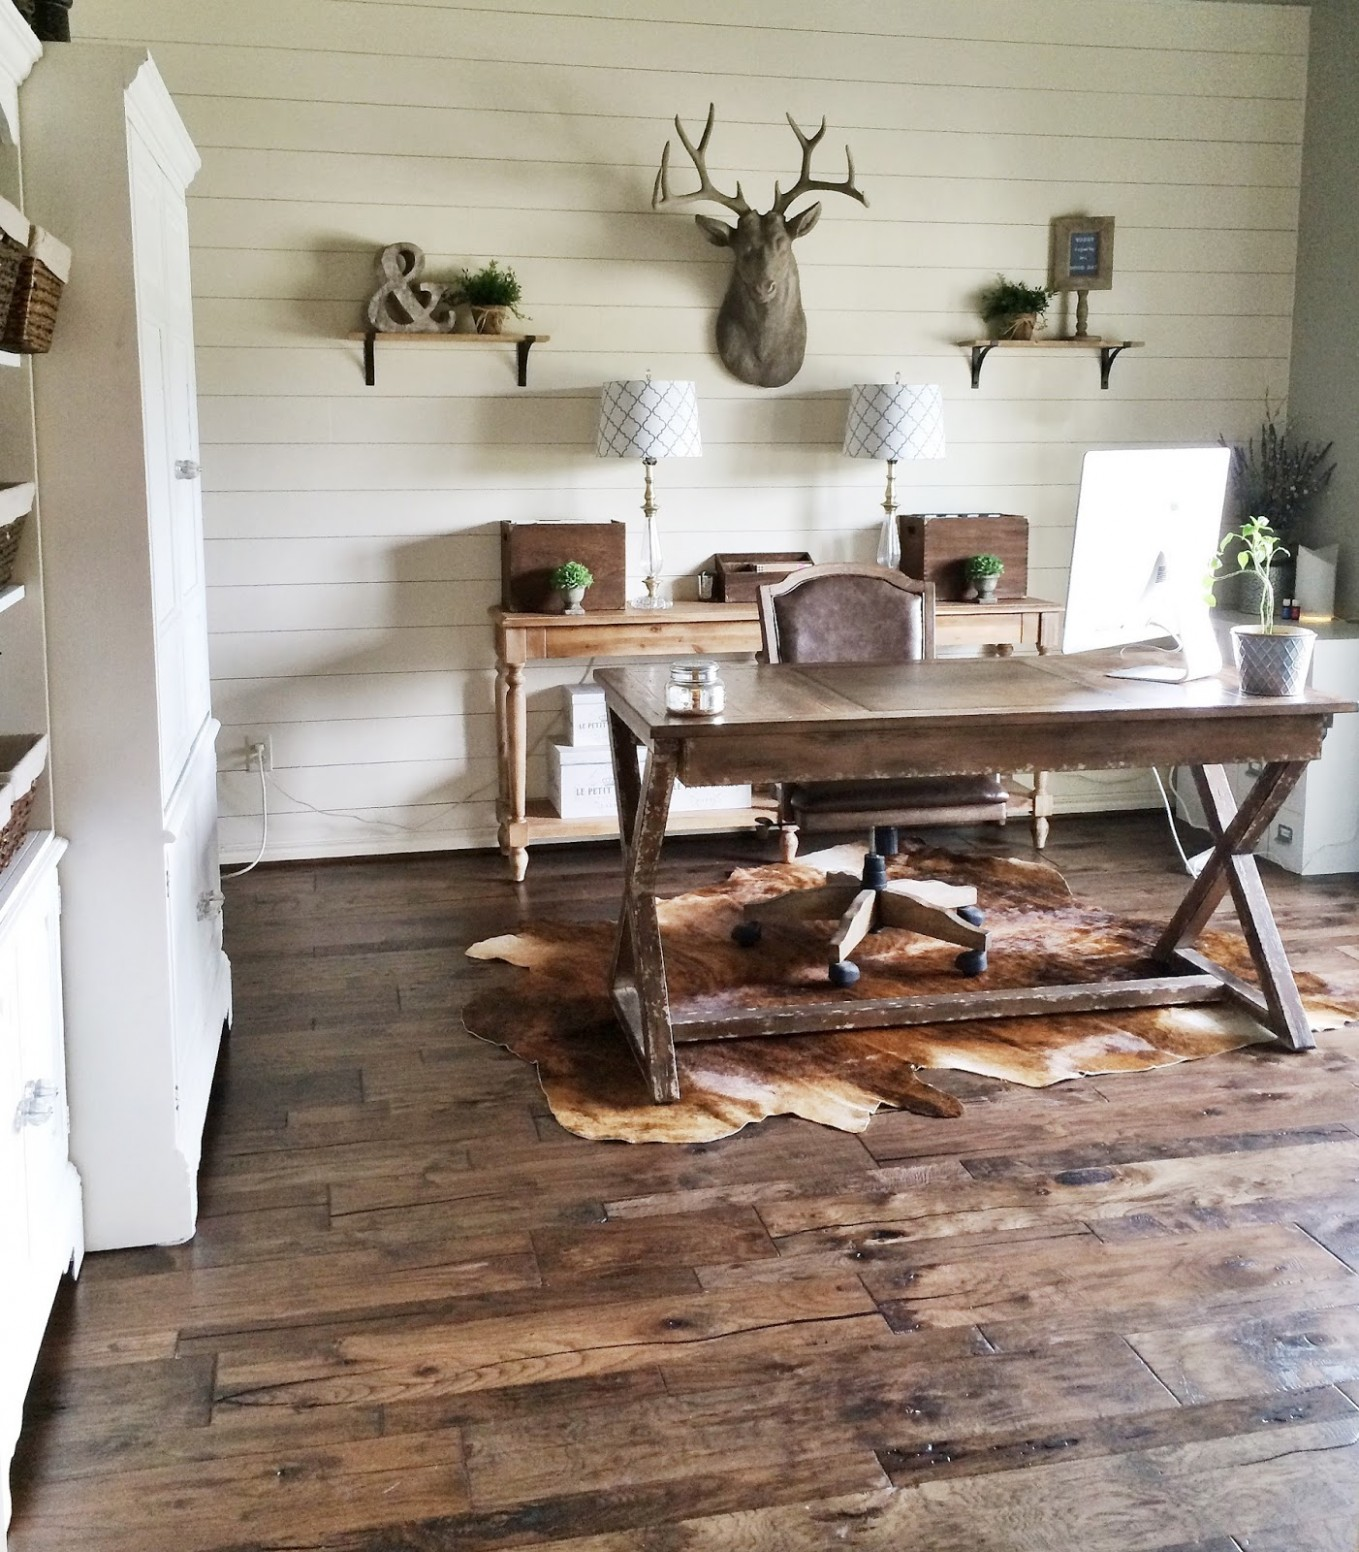 Cozy Workspaces: Home Offices with a Rustic Touch - Home Office Ideas Rustic